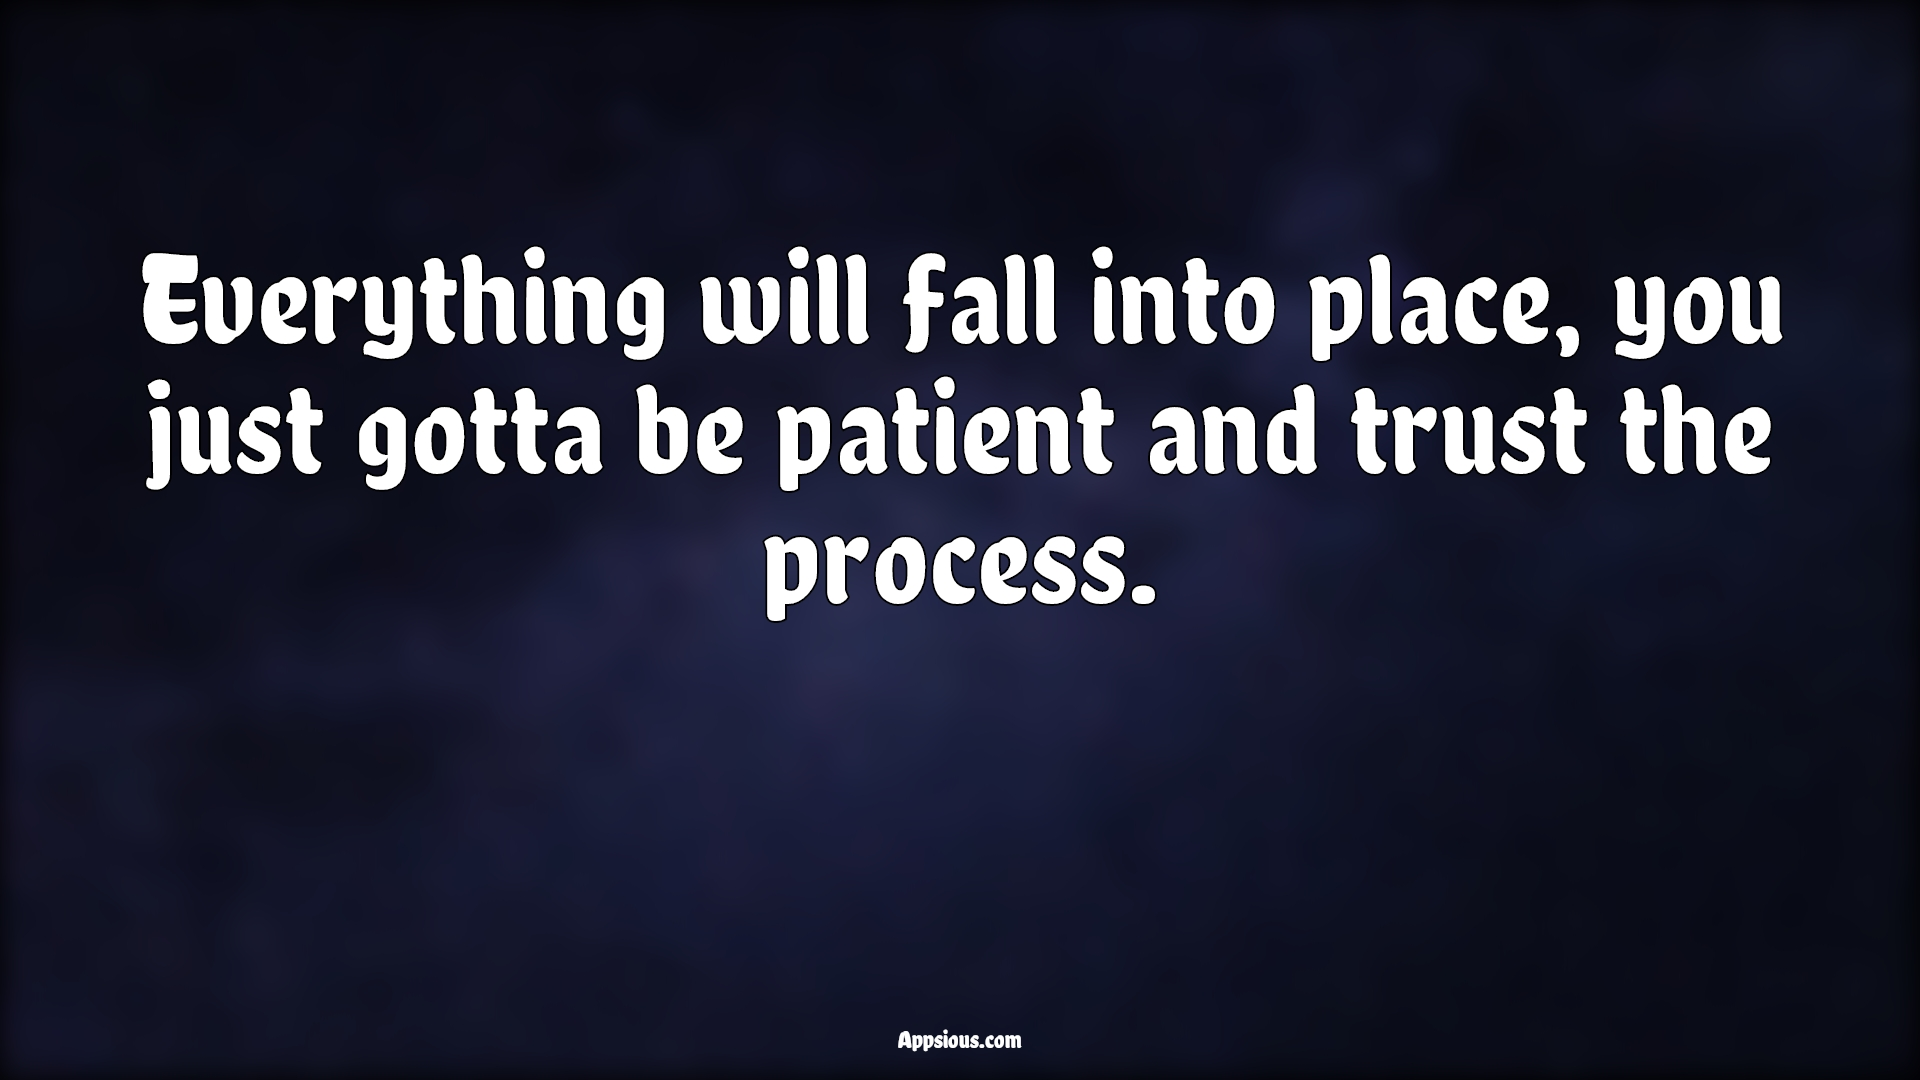 Everything will fall into place, you just gotta be patient and trust the process.